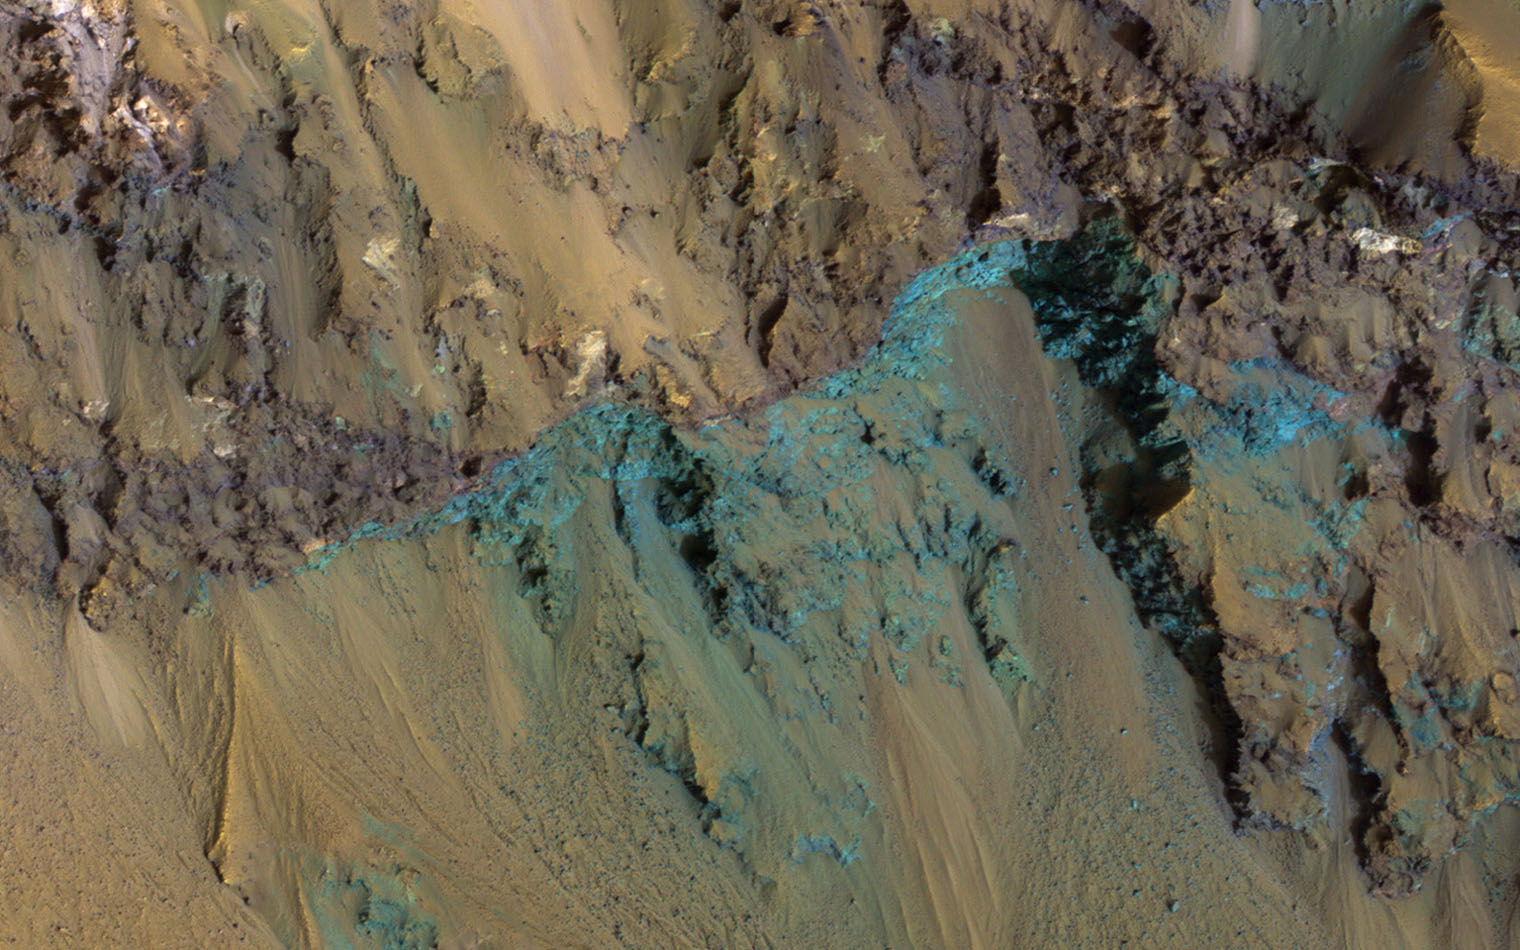 This image from NASA's Mars Reconnaissance Orbiter shows Hale Crater, a large impact crater (more than 100 kilometers) with a suite of interesting features such as active gullies, active recurring slope lineae, and extensive icy ejecta flows.